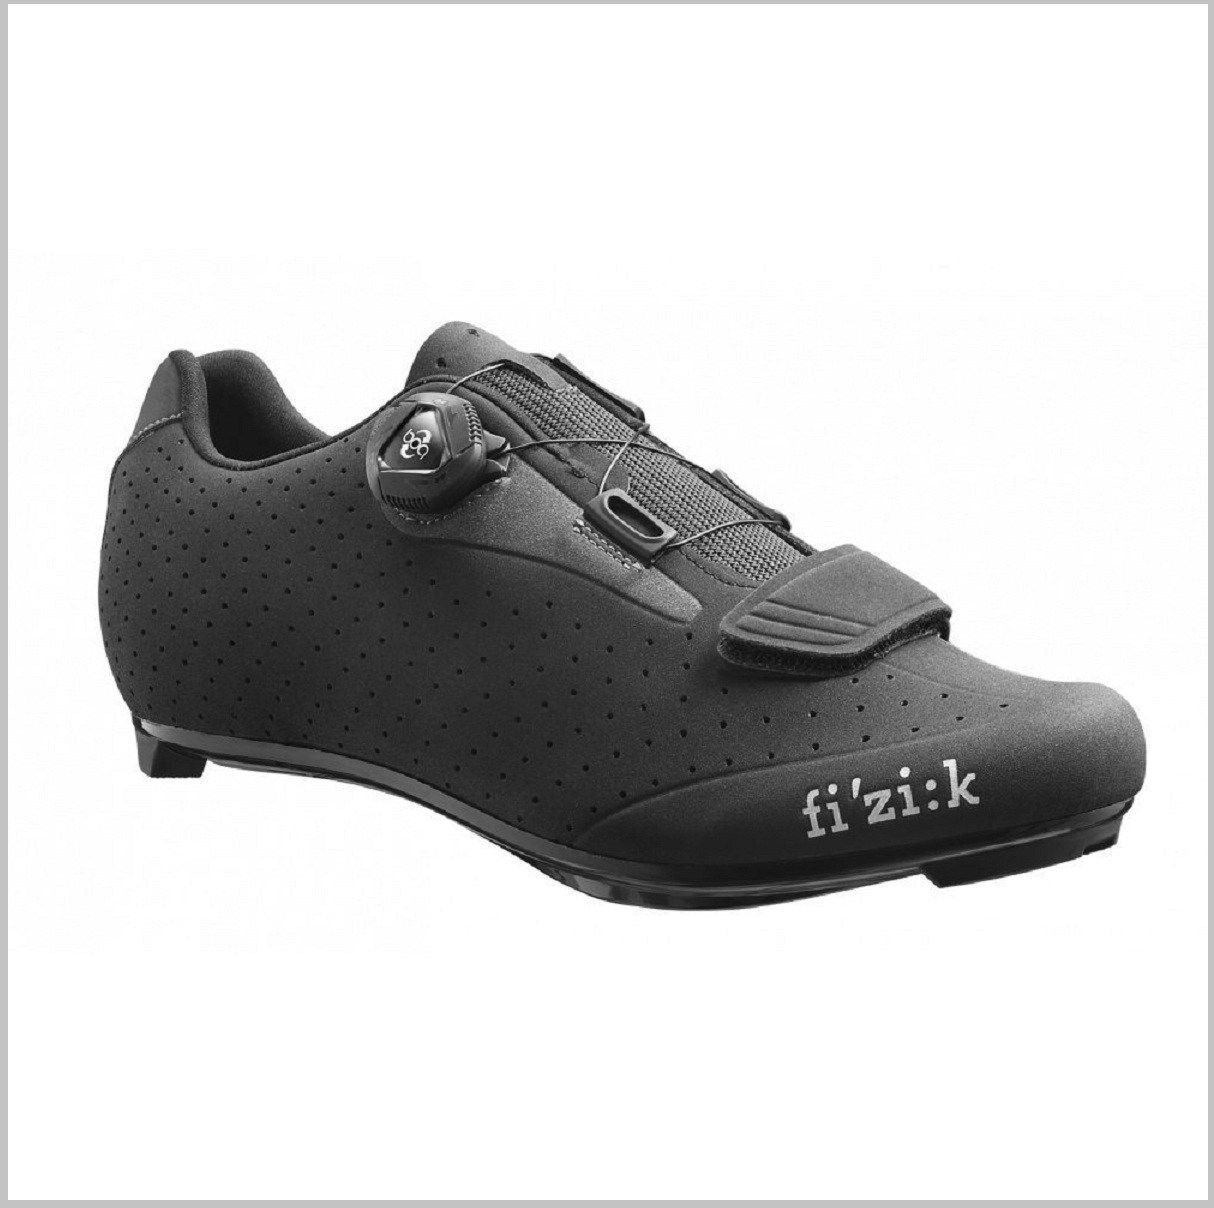 Roadcyclingshoes Cycling Shoes Road Cycling Shoes Bike Shoes